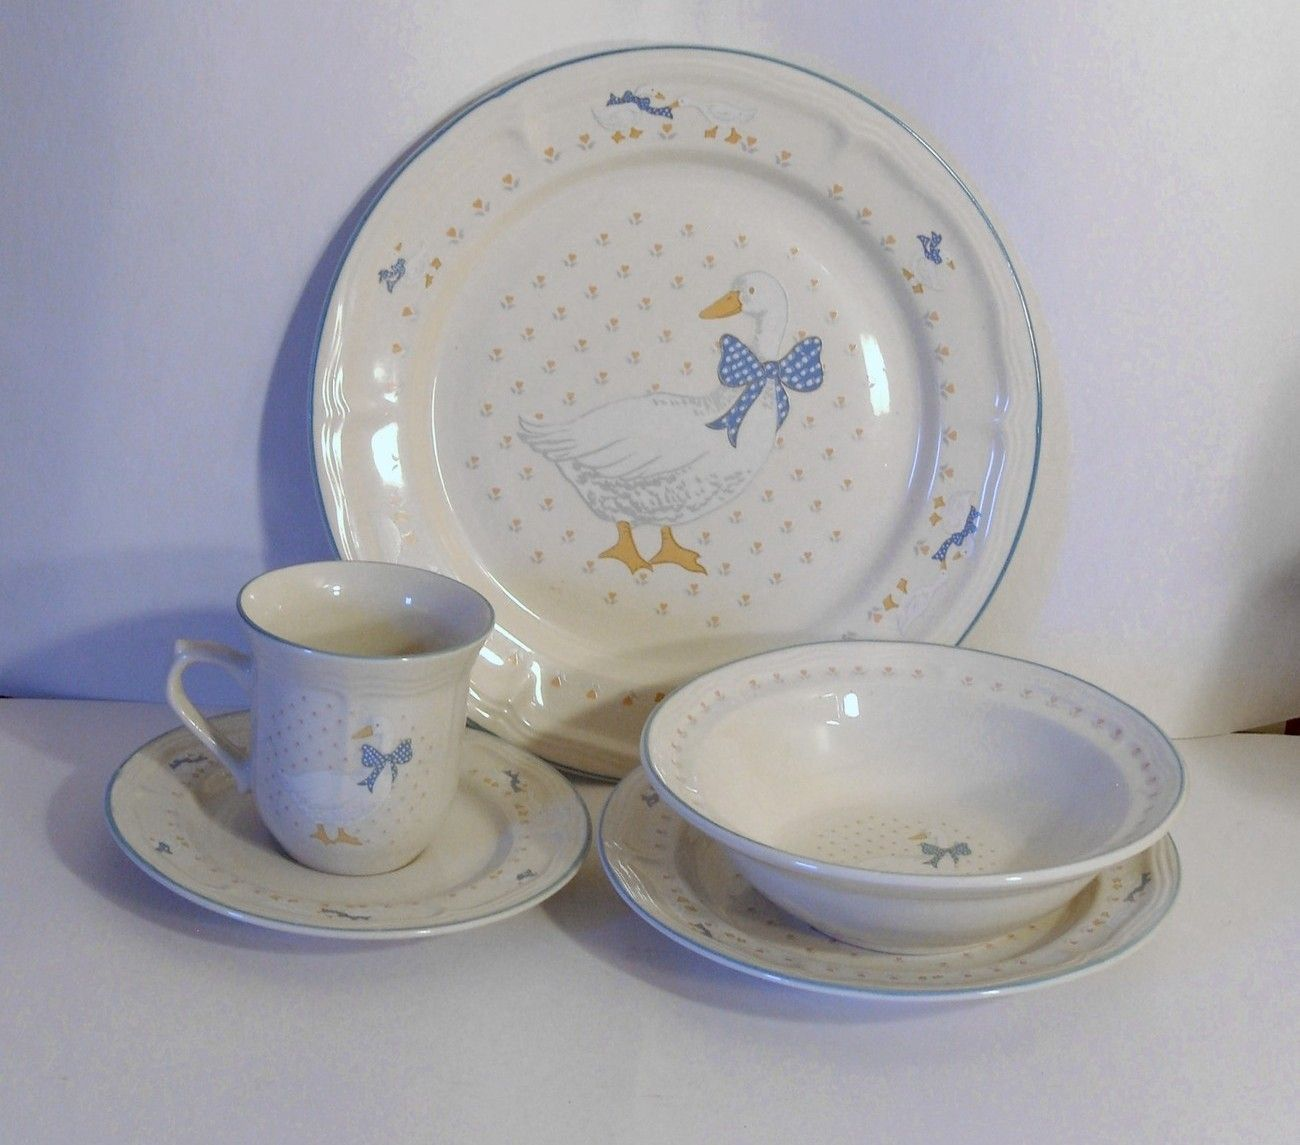 Country Geese Dish Set This Is A Set Of Brickoven